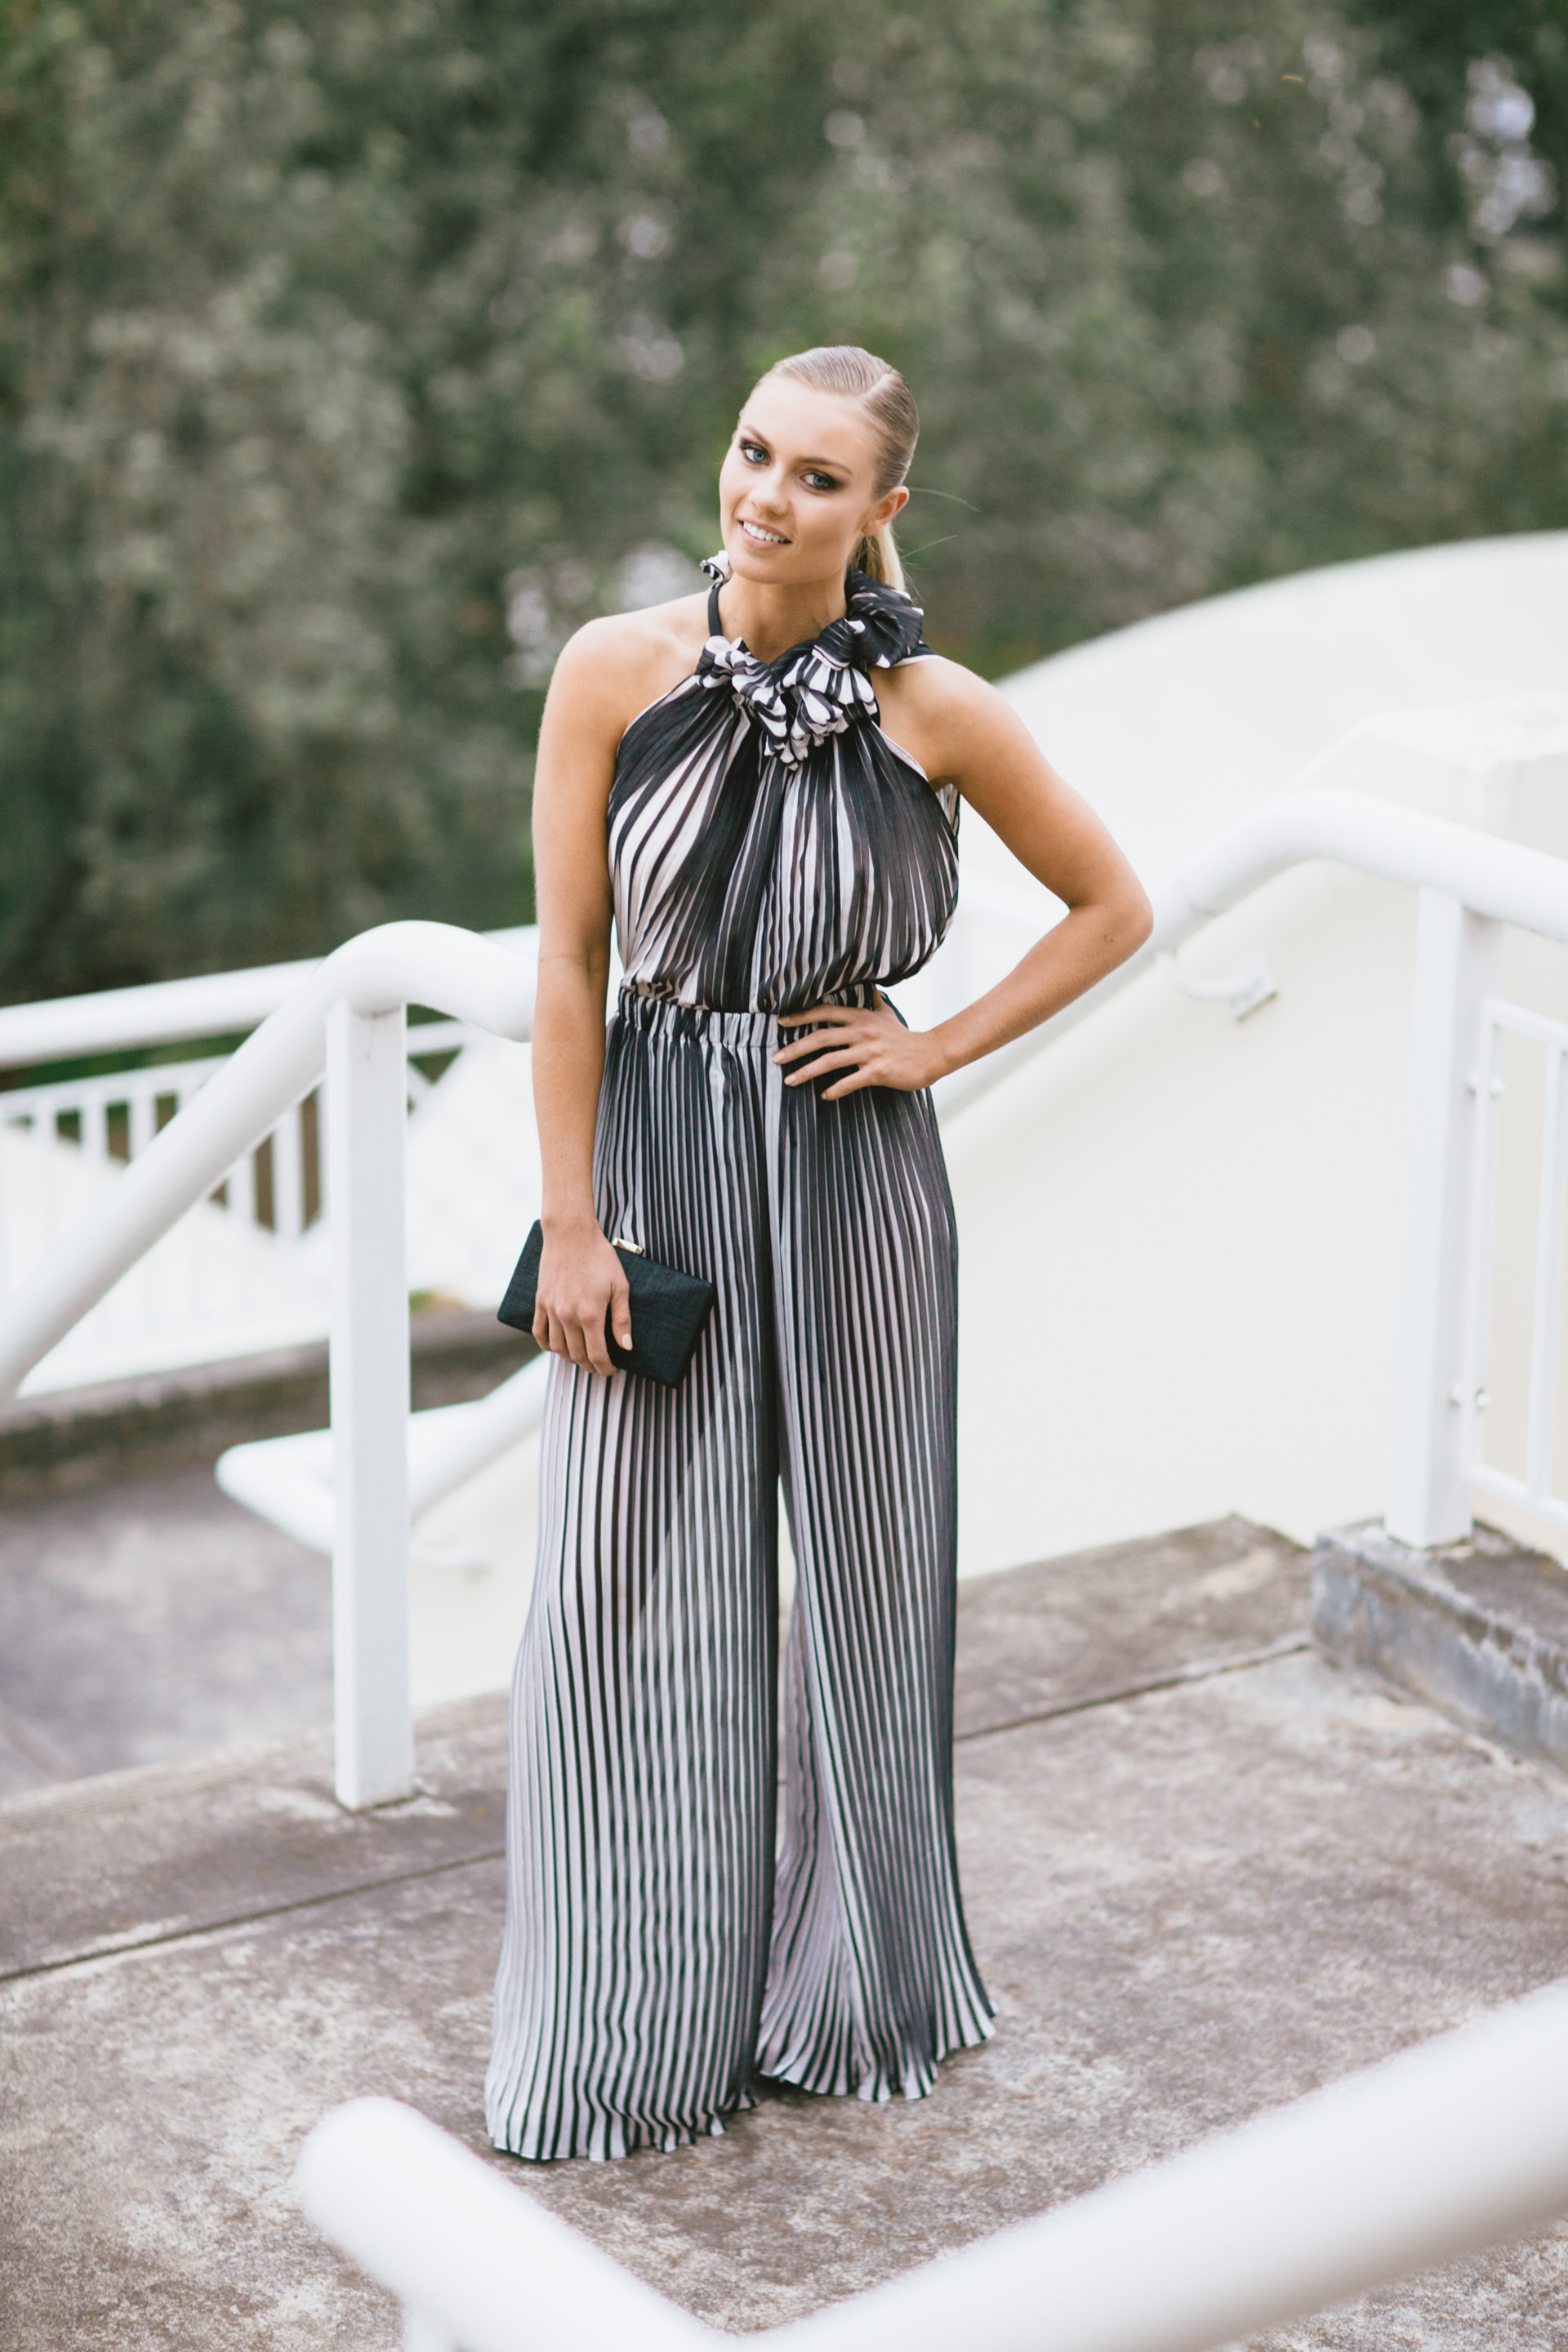 outfit photos at events - streetstyle